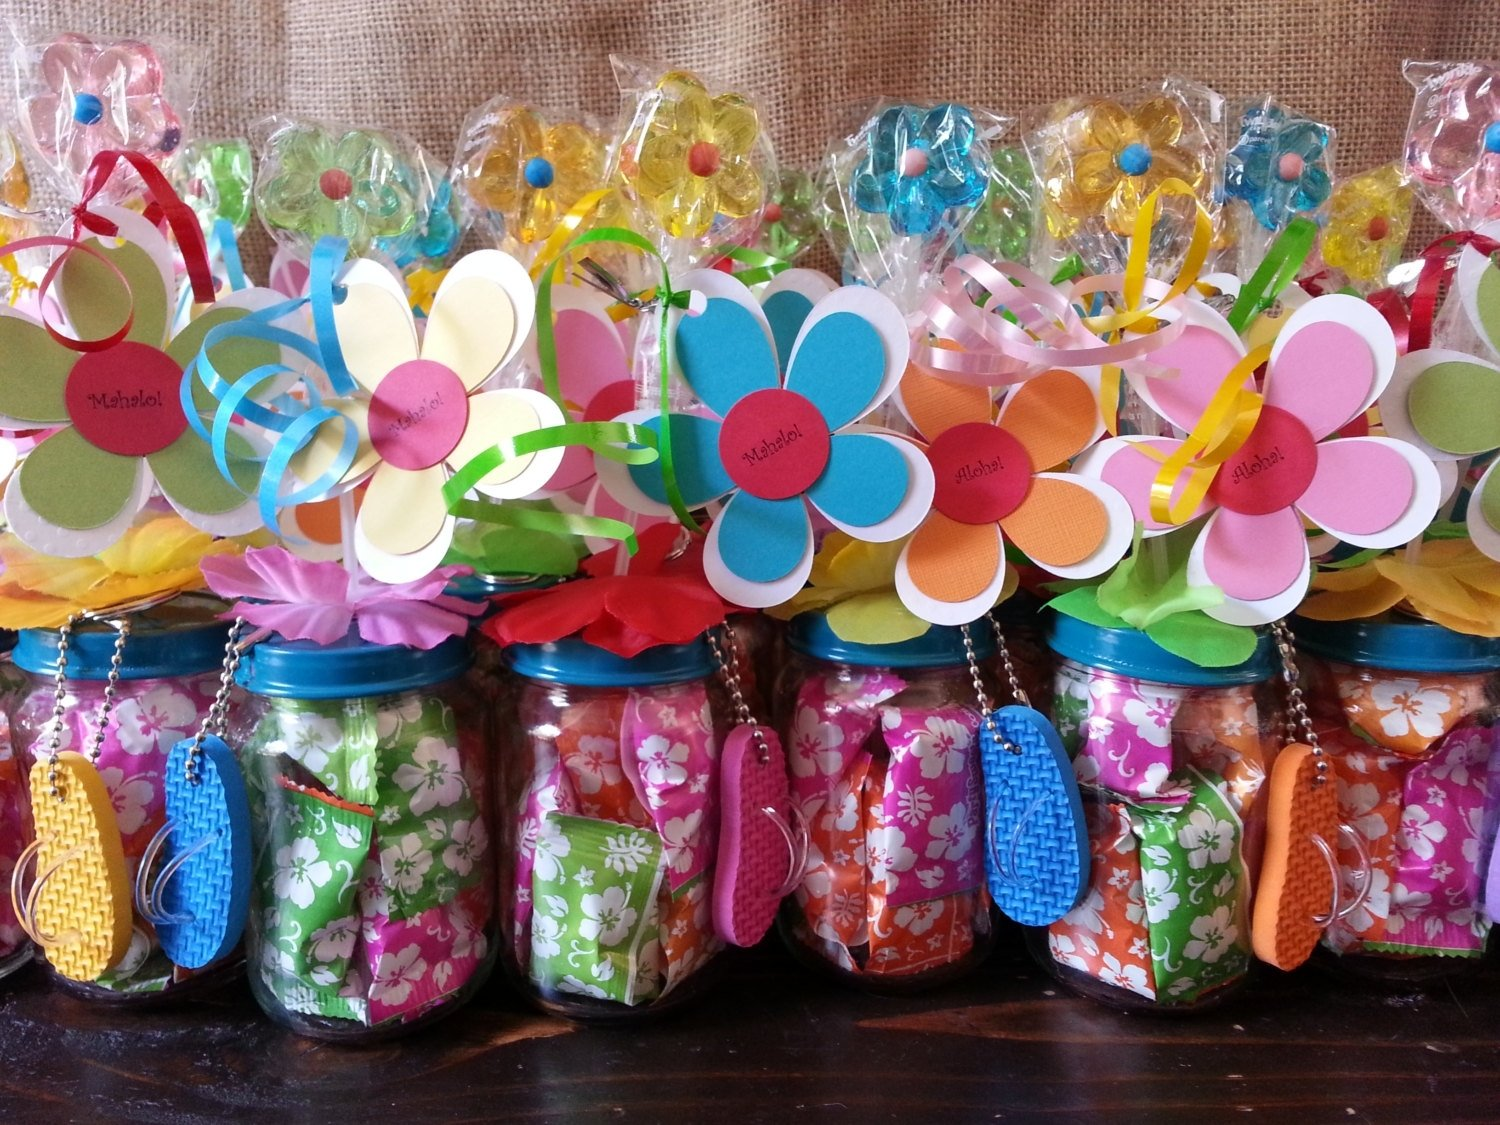 10 Attractive Birthday Party Favor Ideas For Kids greatest birthday party favors kids want baby couture india 2 2020